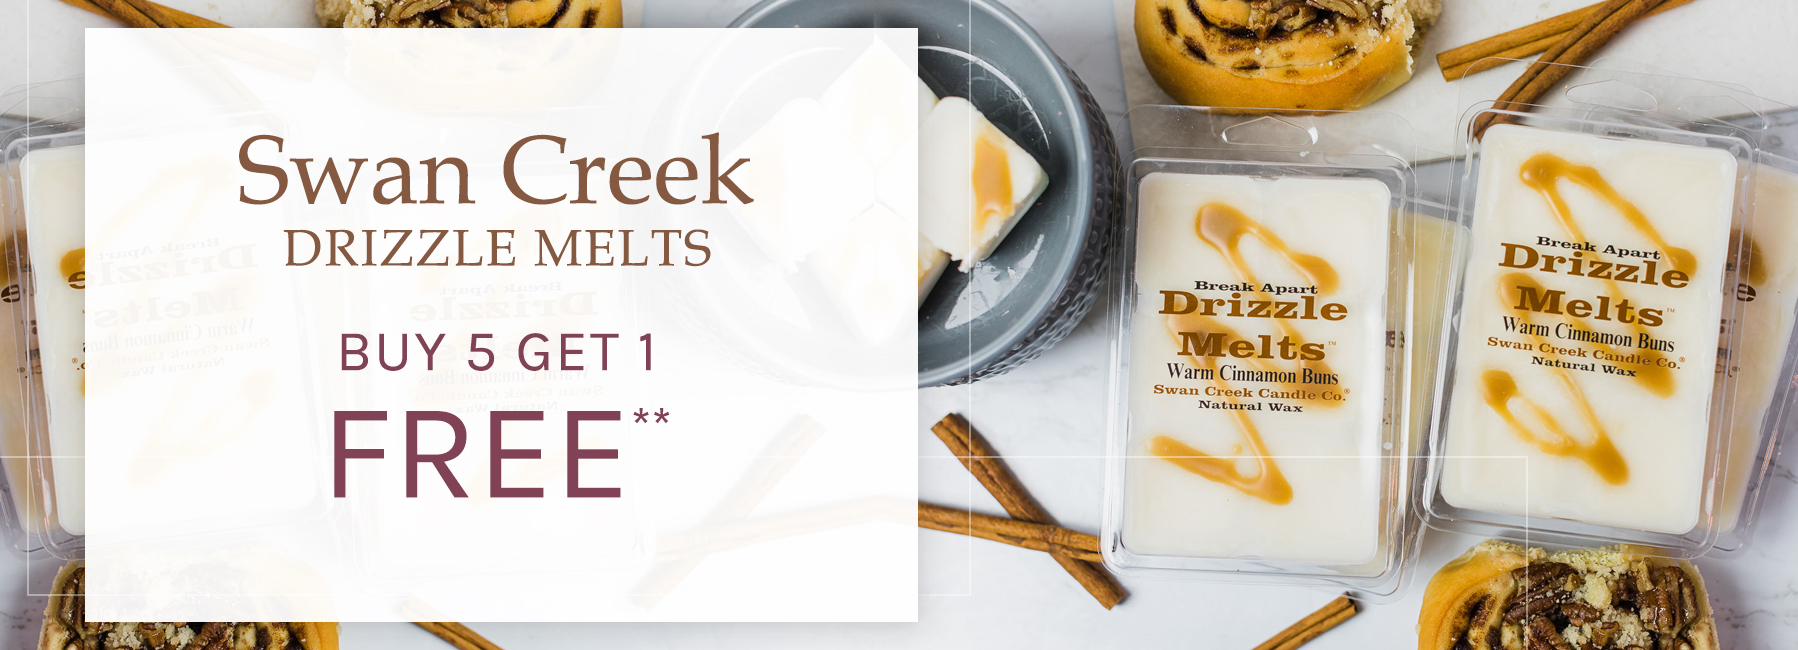 Swan Creek - Drizzle Melts - Buy 5 Get 1 FREE